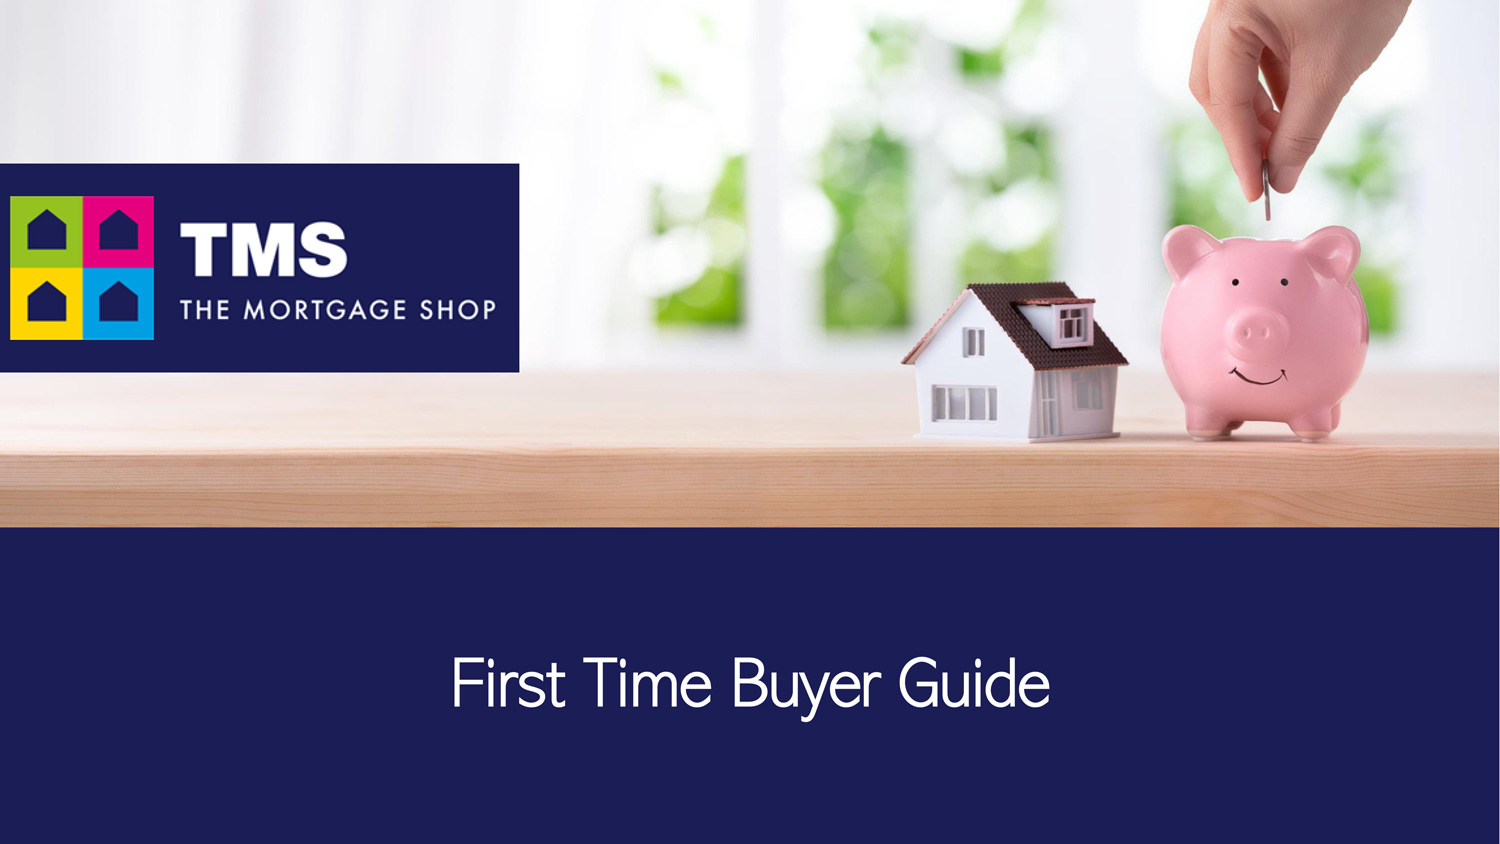 Front cover of the First Time Buyers Guide at The Mortgage Shop